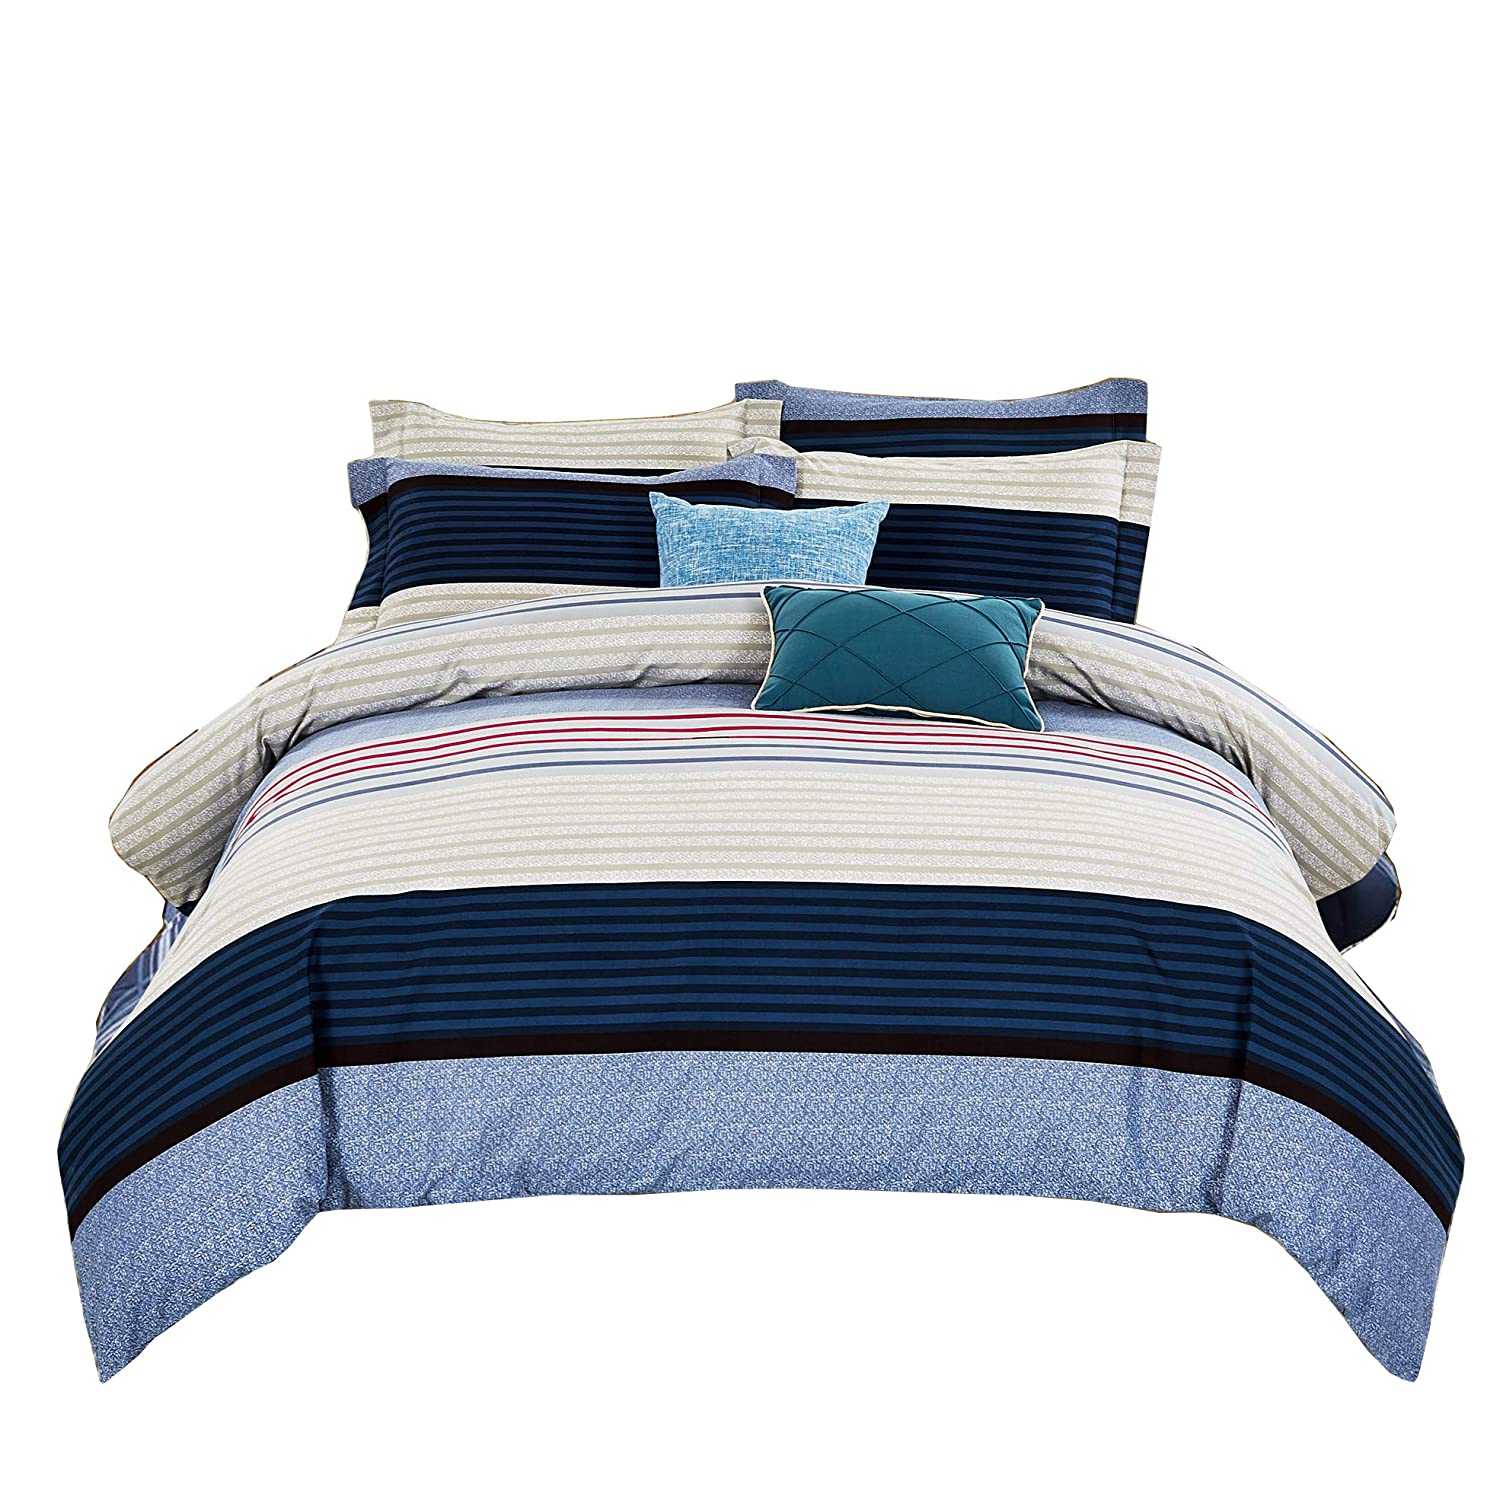 DelbouTree 3pcs Bedding Set, Lightweight Microfiber Duvet Cover Set, Full Queen size Royal Stripe Sweet-Home Team SHT-DC-RoyalSTP-F/Queen02-CA